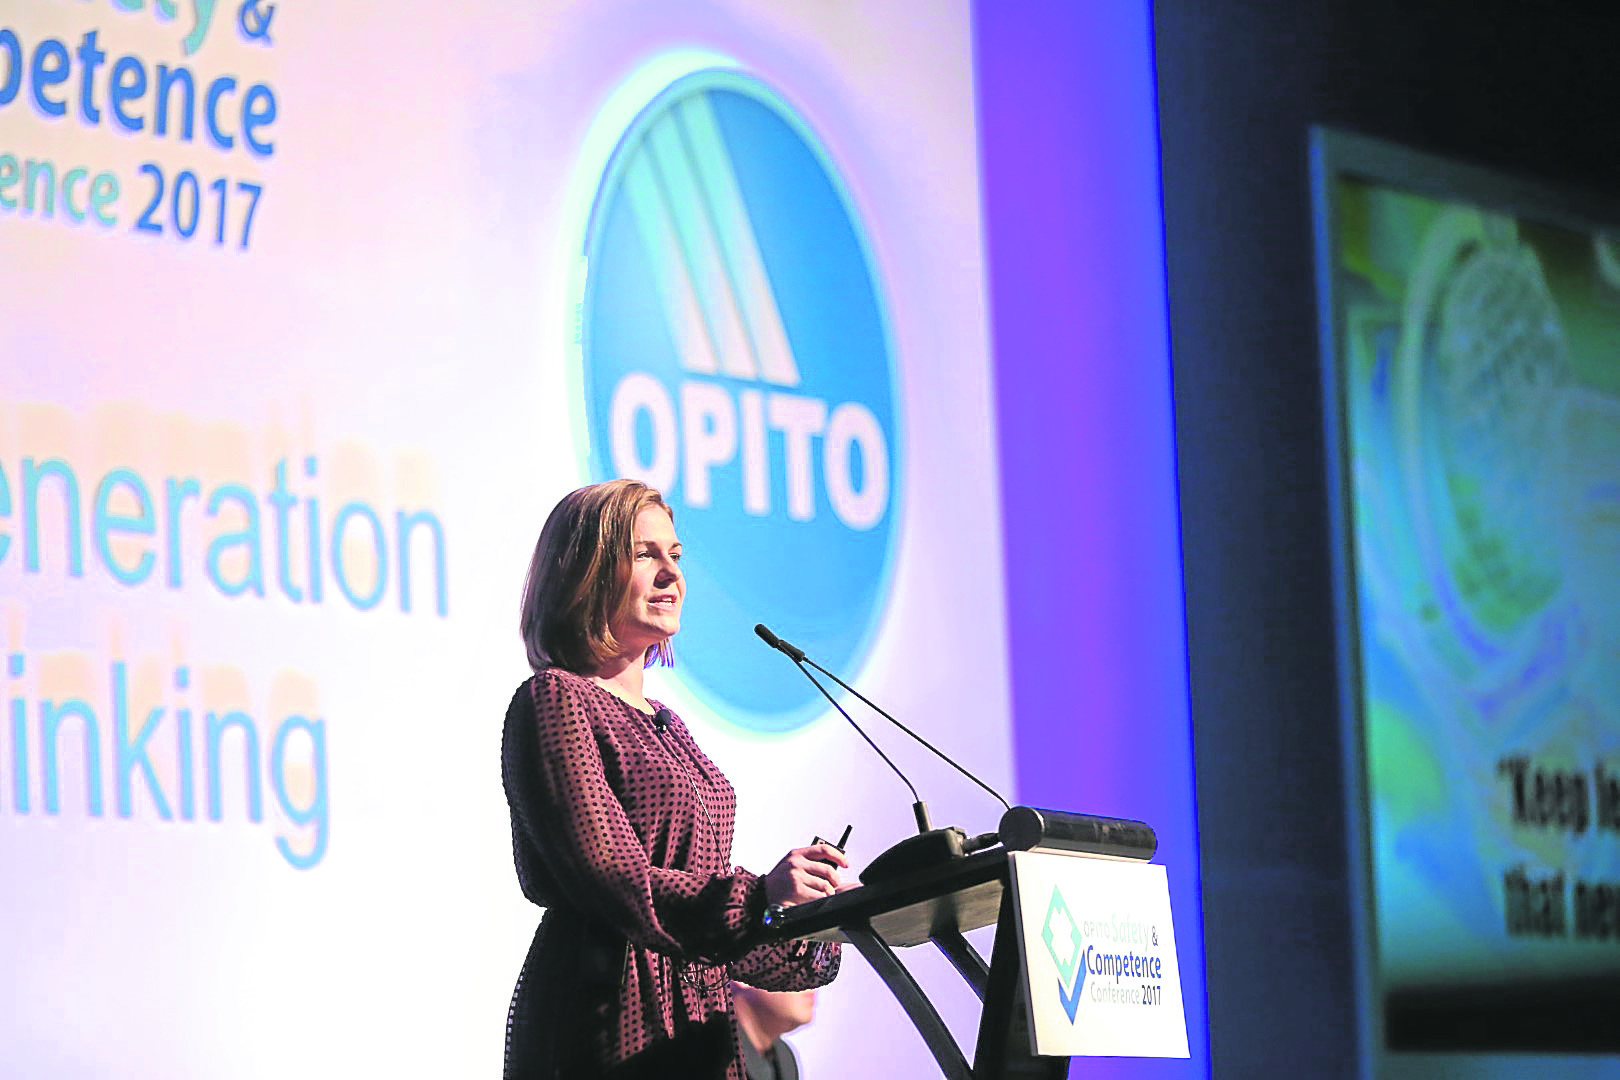 Christine Currie is director of OPITO